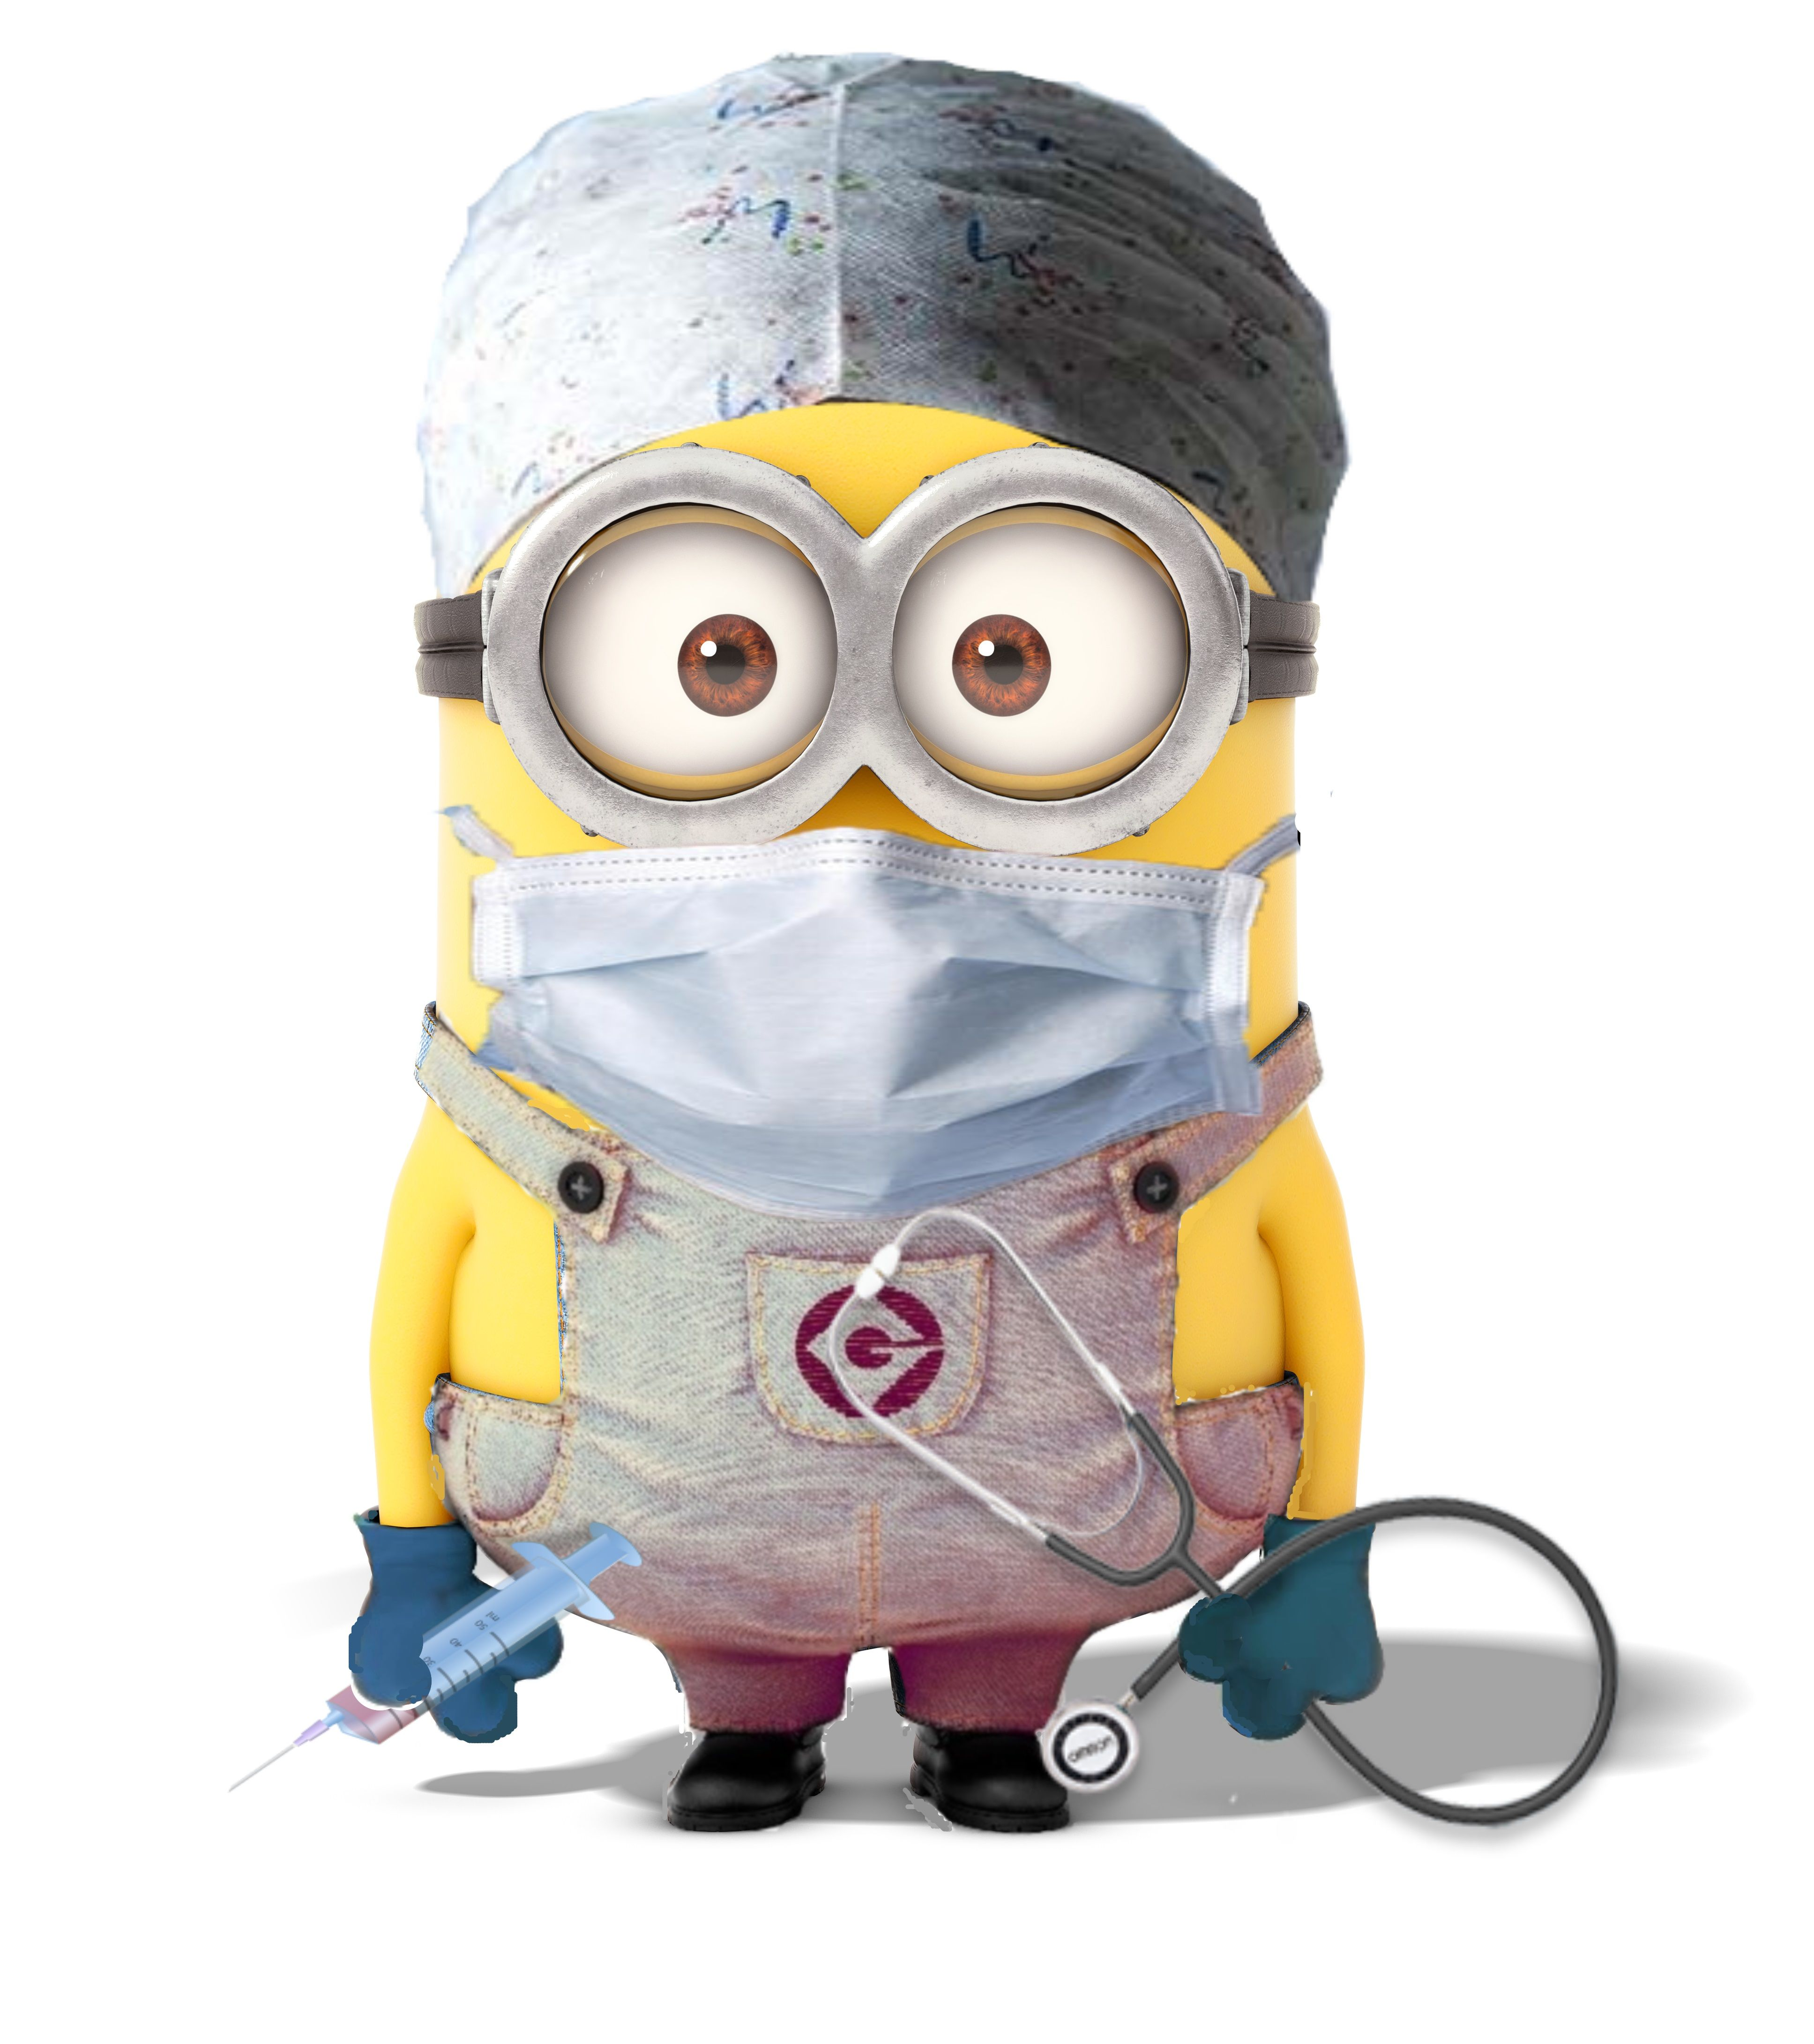 Minion on pinterest minions despicable me and despicable me 2 - Image minions ...